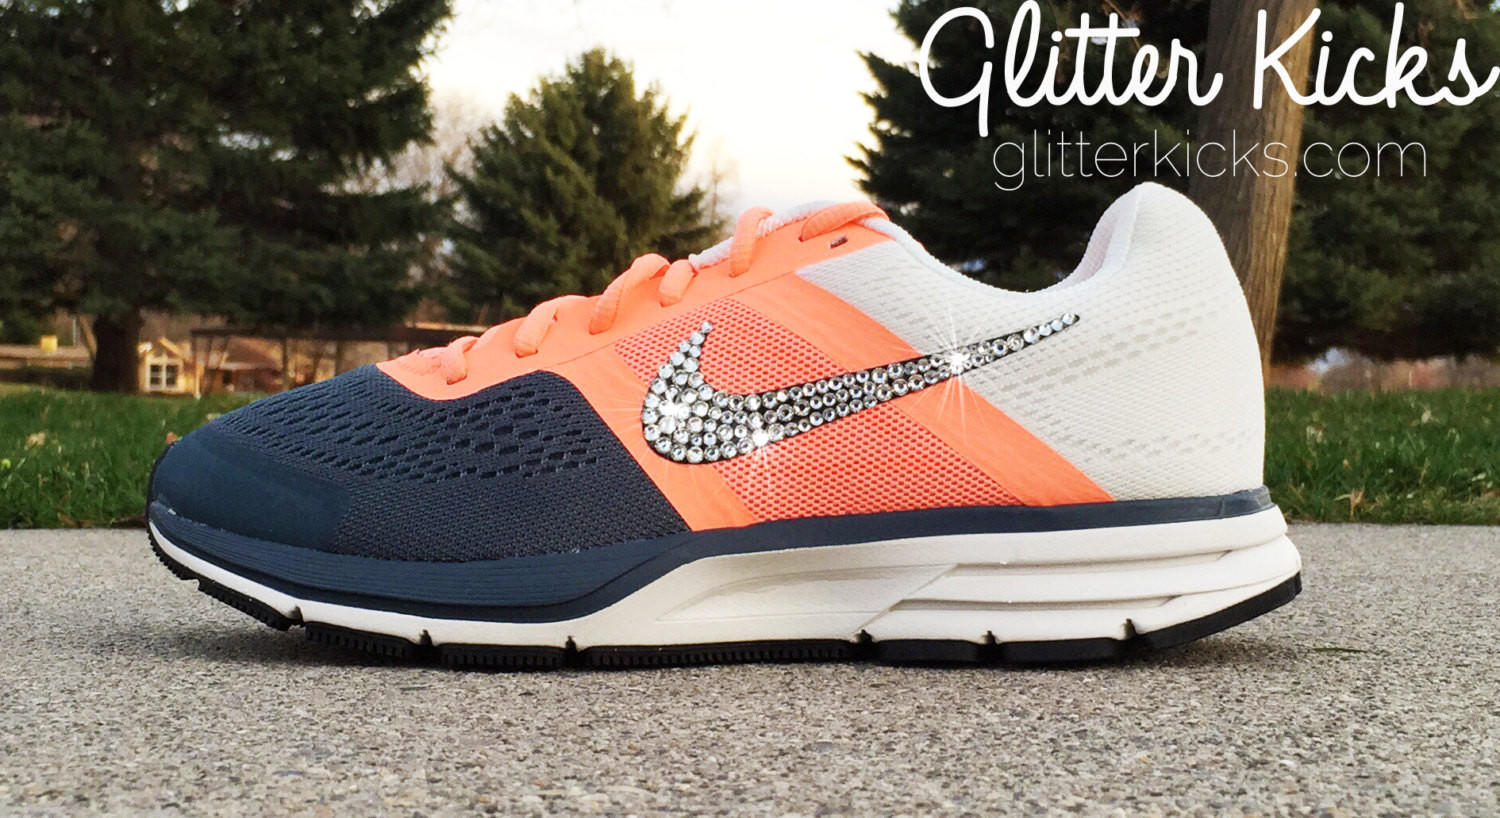 Women s Nike Air Pegasus 30 Running Shoes from Glitter Kicks 8375a7a6c